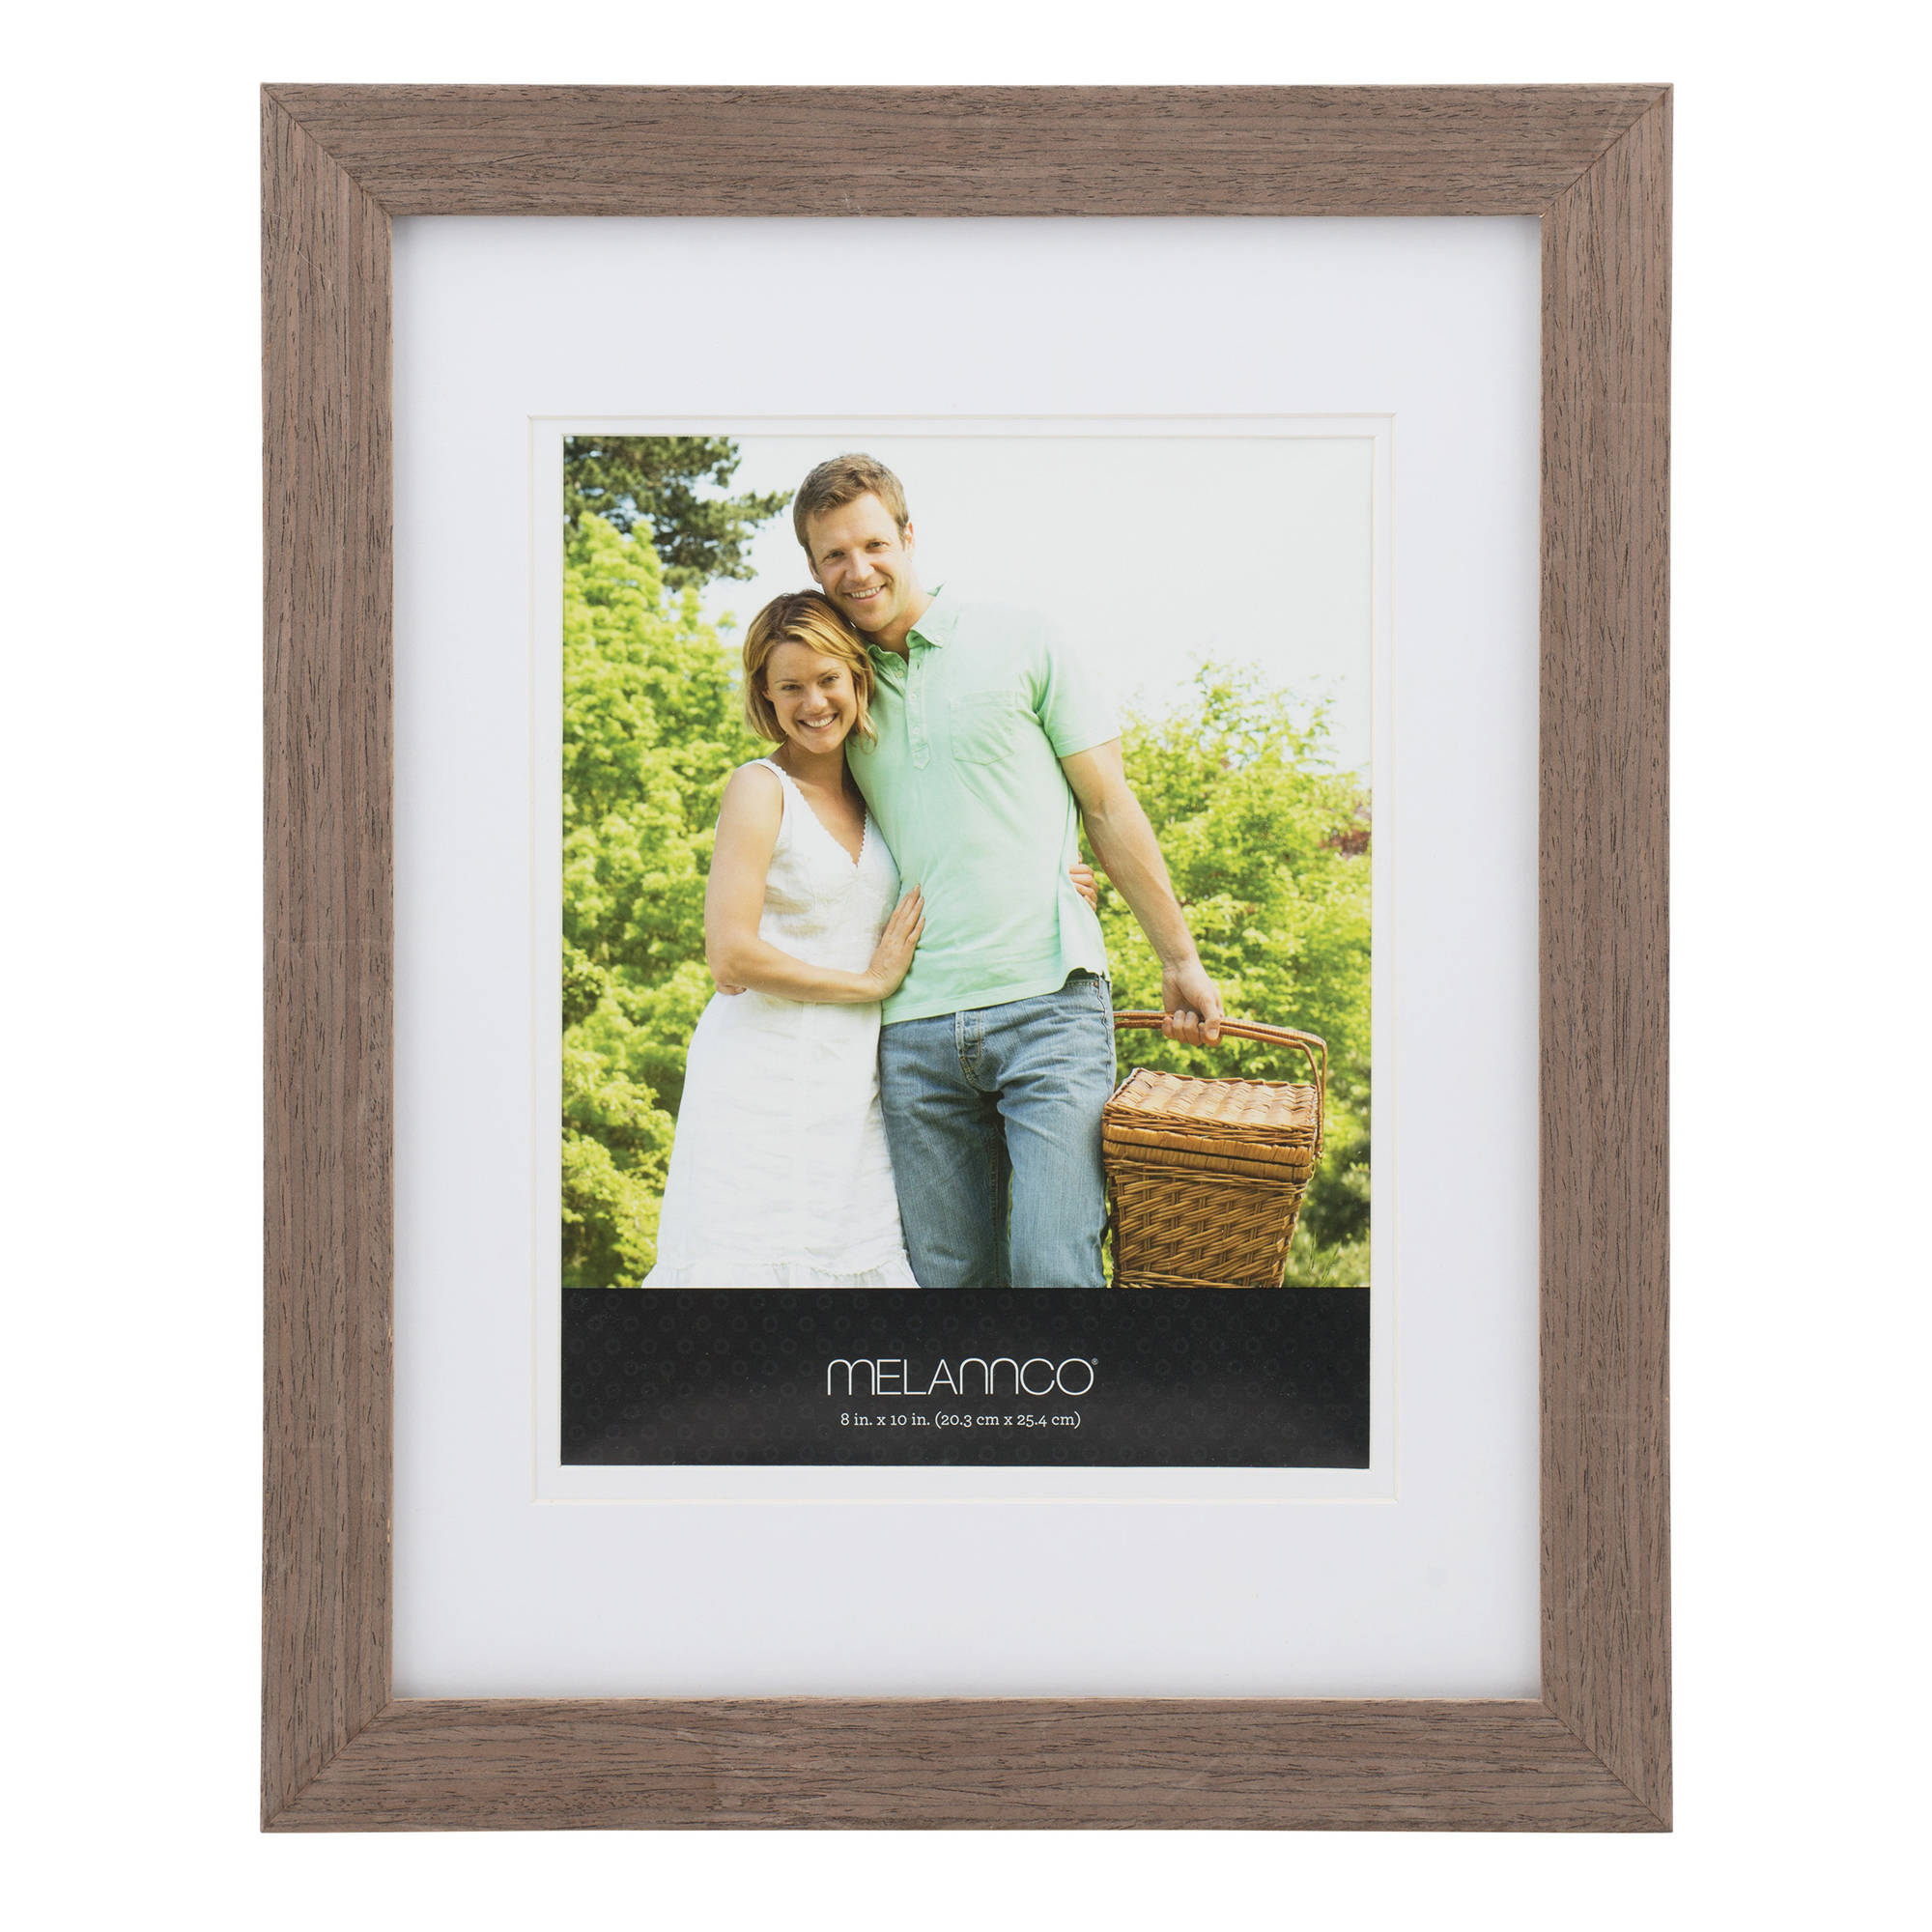 Melannco 13 x 16 Wood Photo Frame - Walmart.com